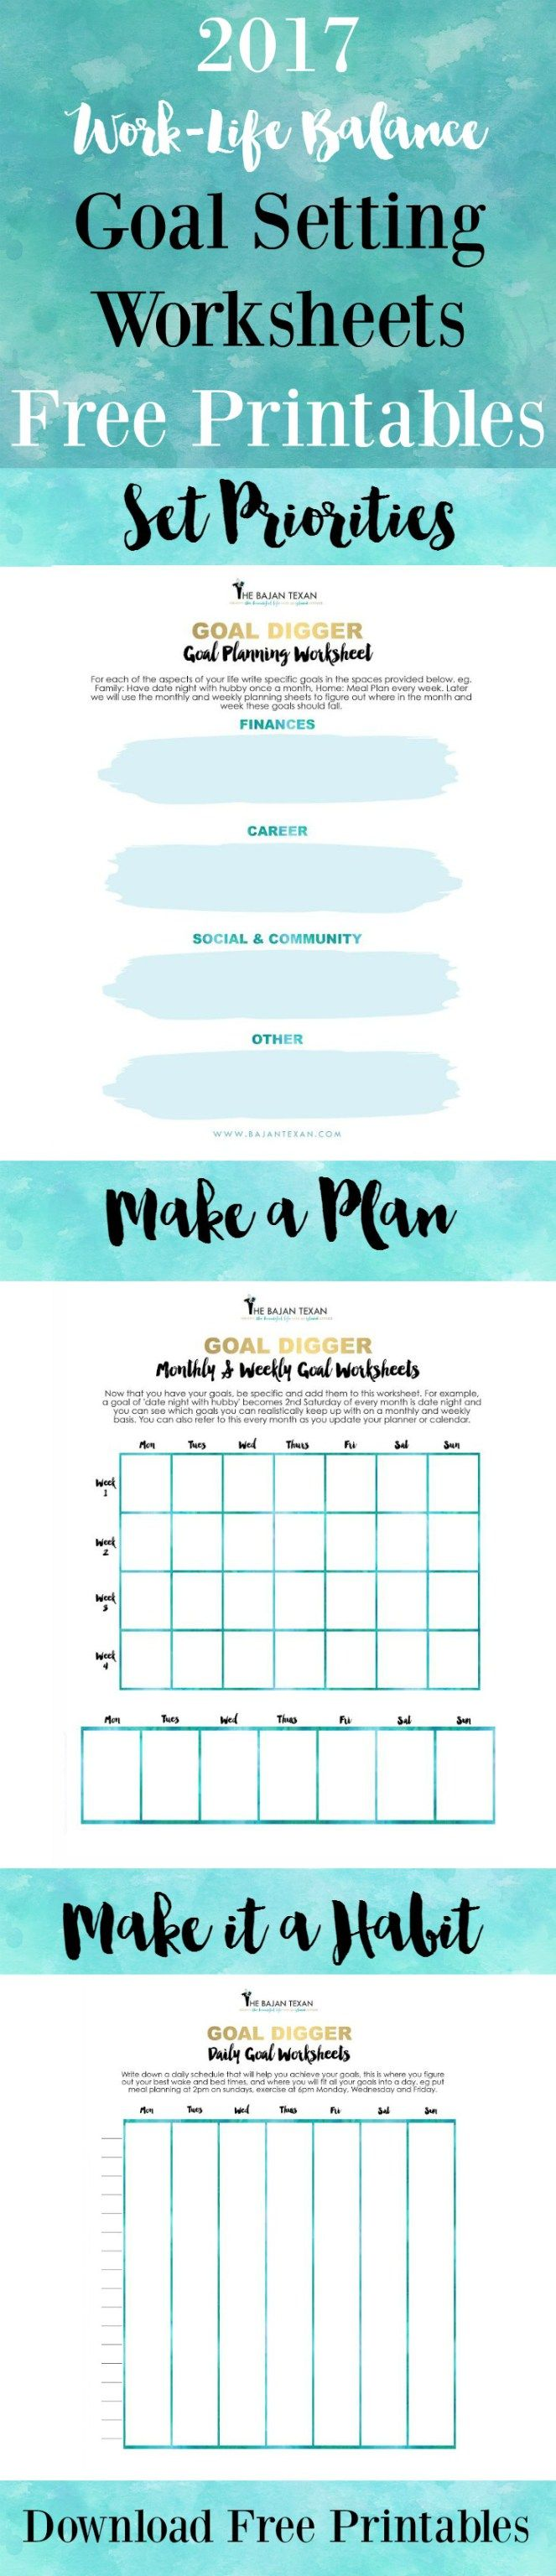 Free Goal Planning Worksheets for the New Year | Pinterest ...